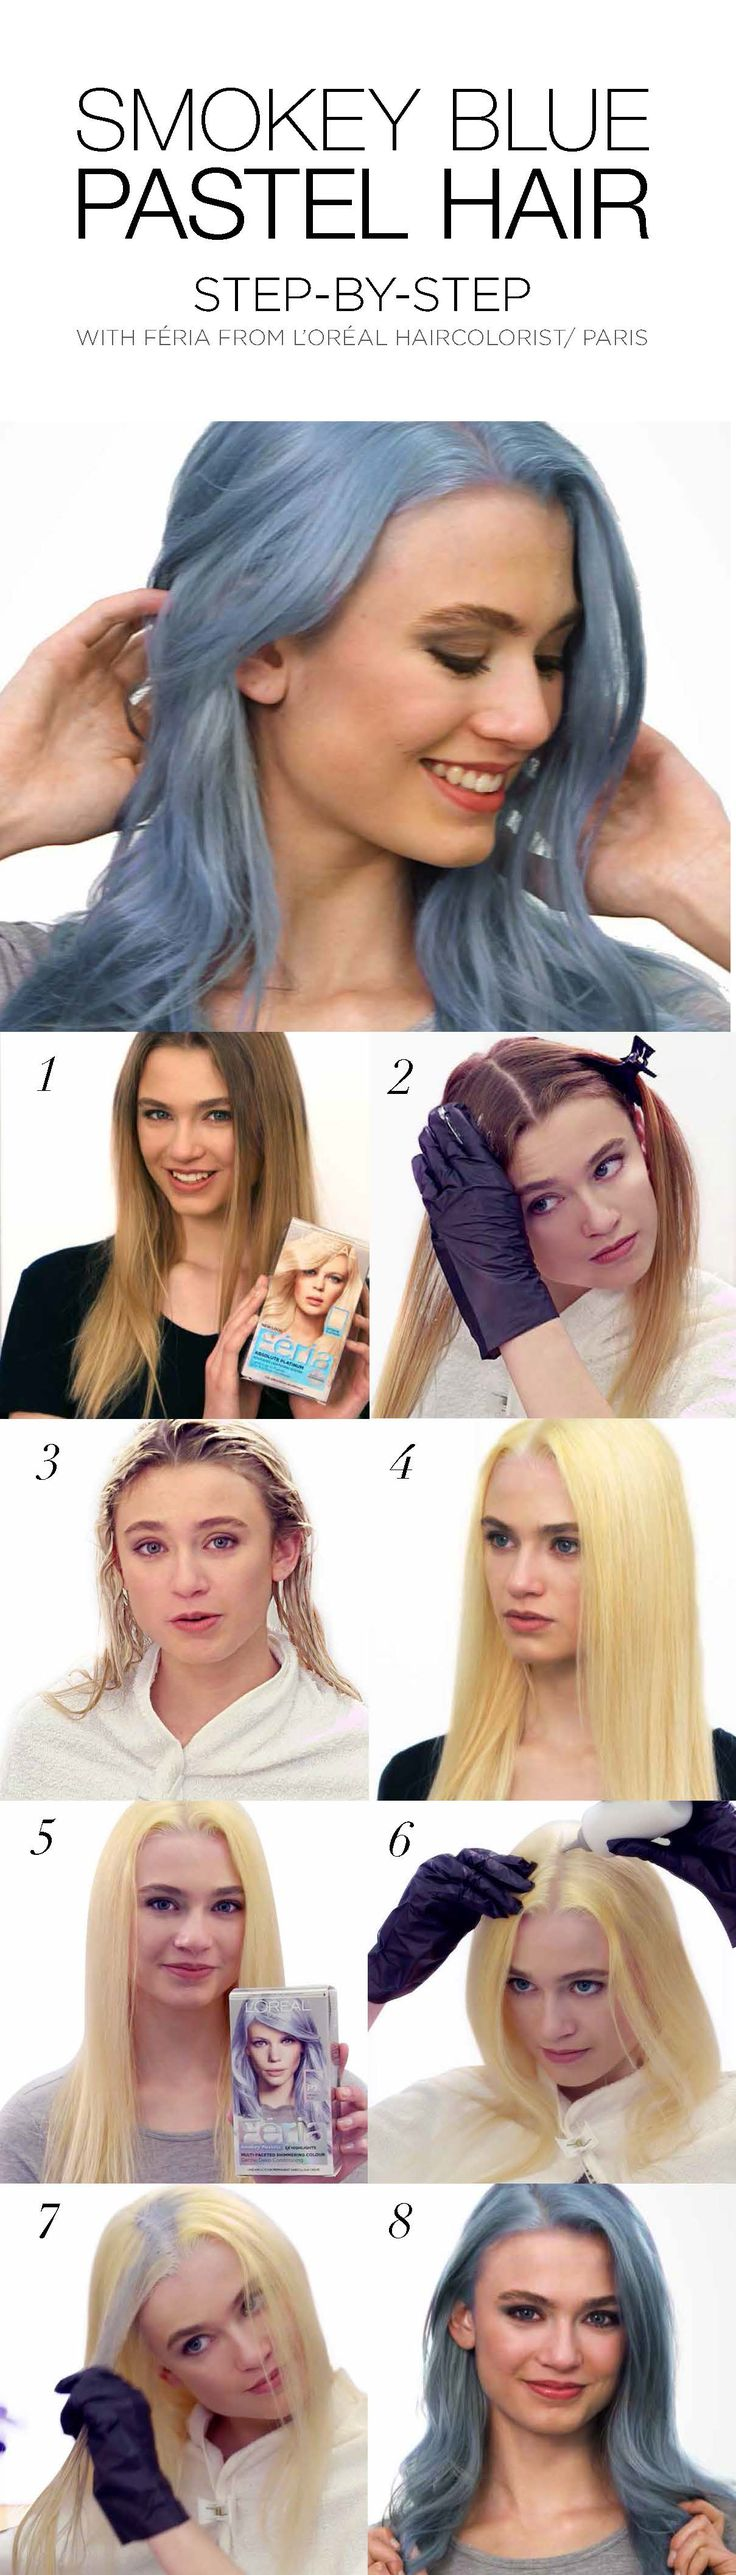 DIY Pastel hair color: How to dye hair blue at home using Feria Smokey Pastels. If hair is darker, start by pre-lightening with Feria Extreme Platinum. Apply Pastels 14 days later.